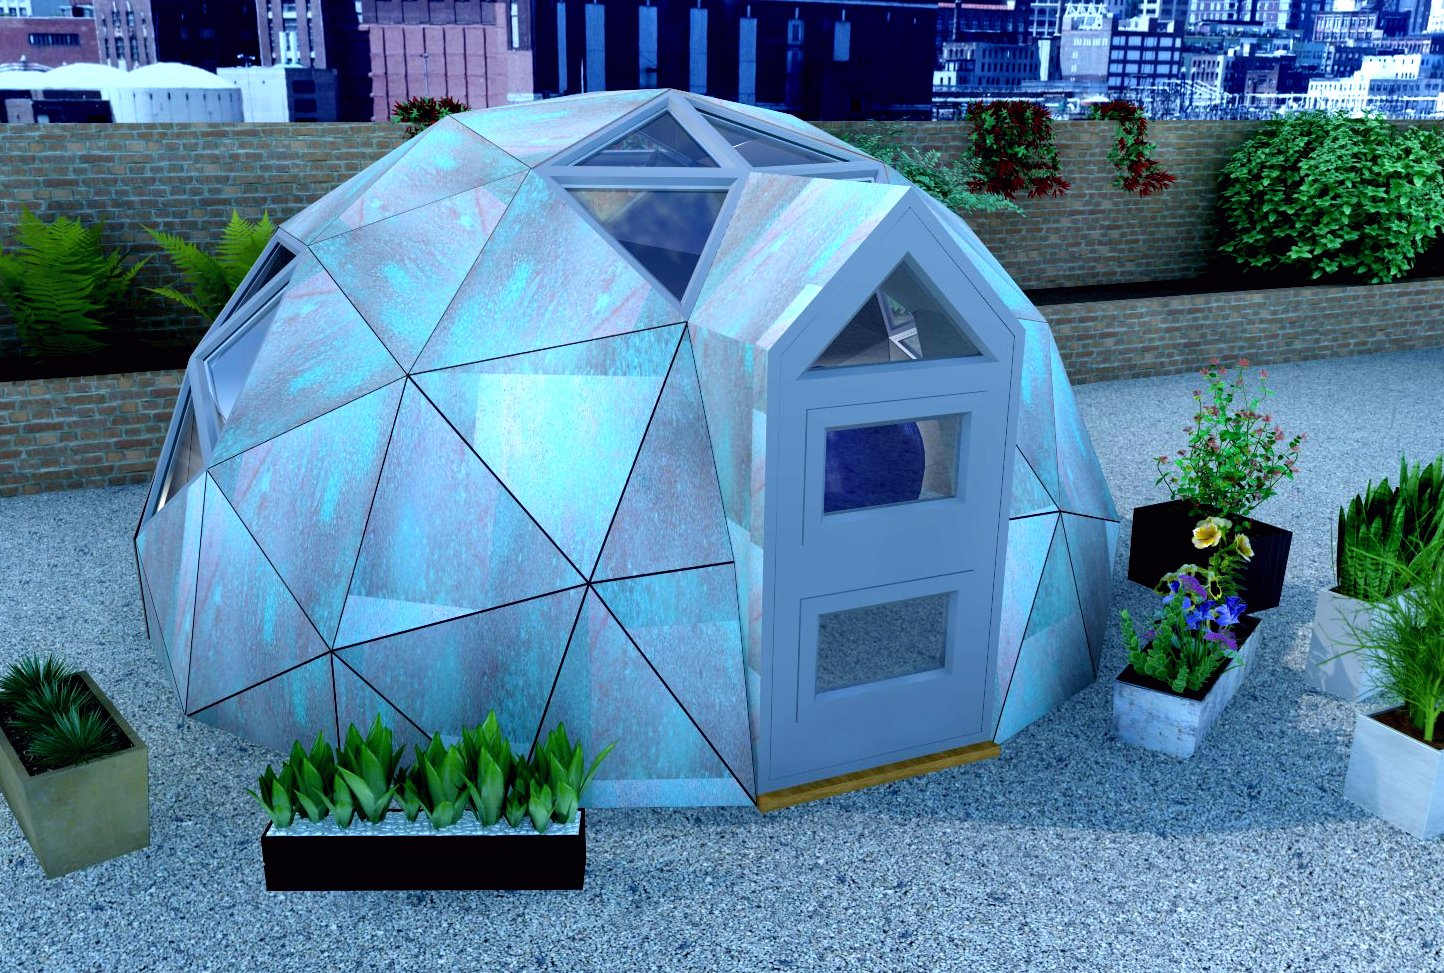 Image of the exterior of a Unique Dome.